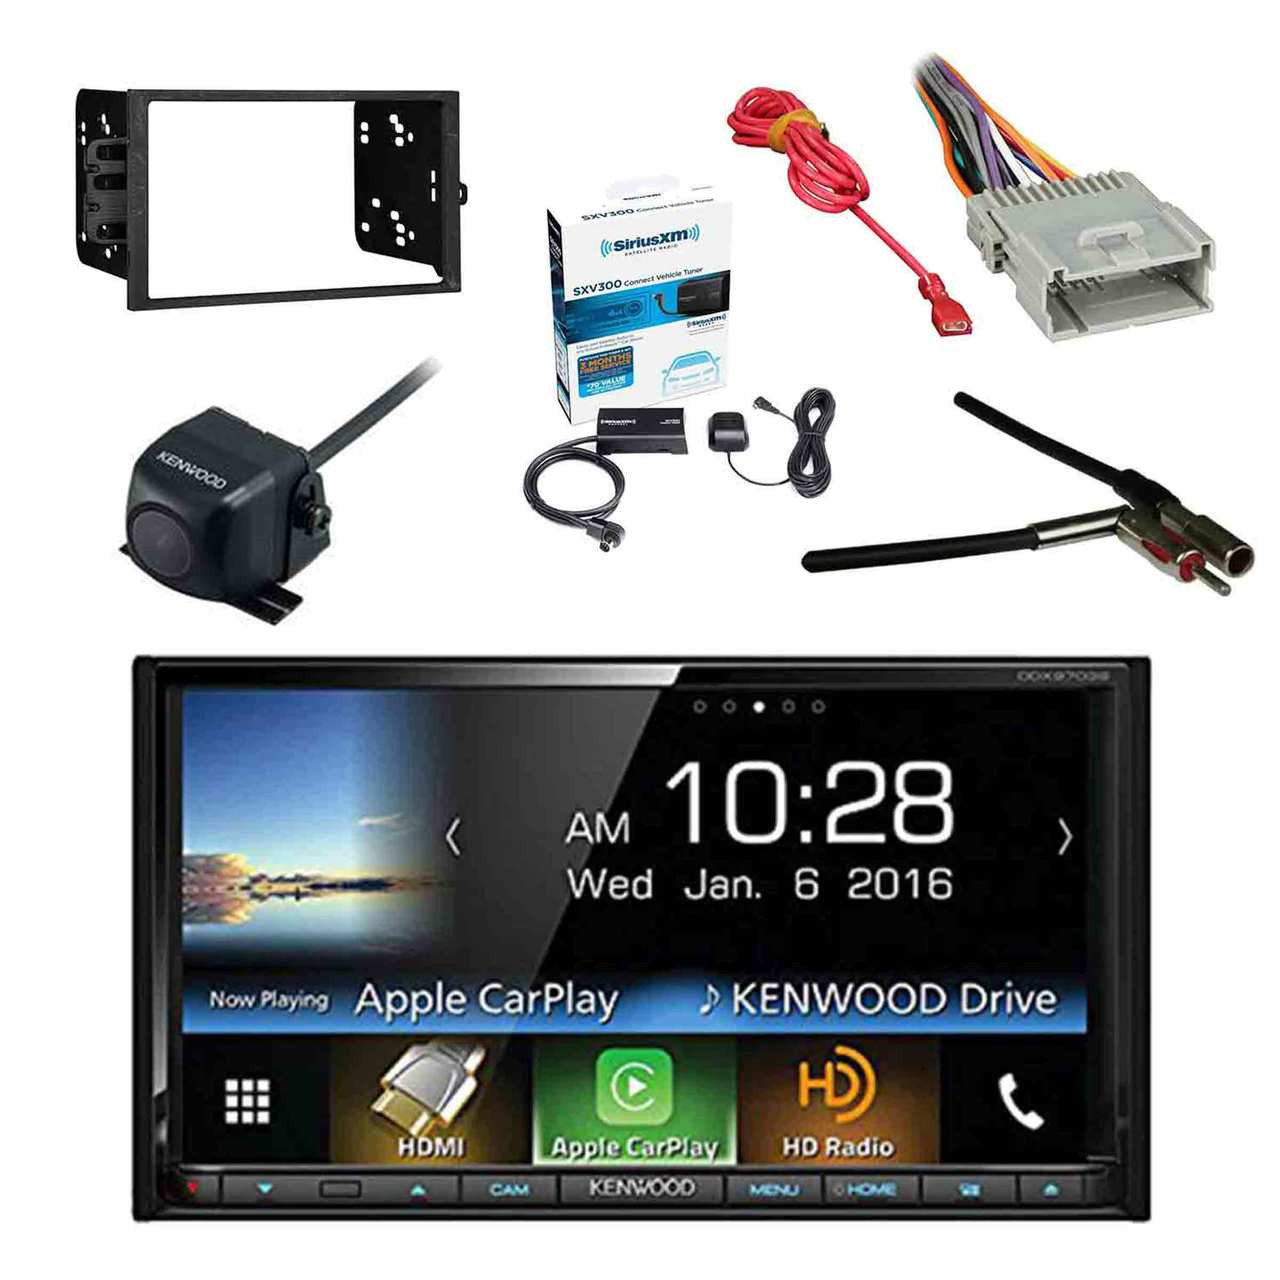 kenwood ddx9703s 2 din dvd cd am fm car stereo receiver w sirius radio tuner kenwood rearview wide angle camera metra 2din dash kit for radio  [ 1280 x 1280 Pixel ]